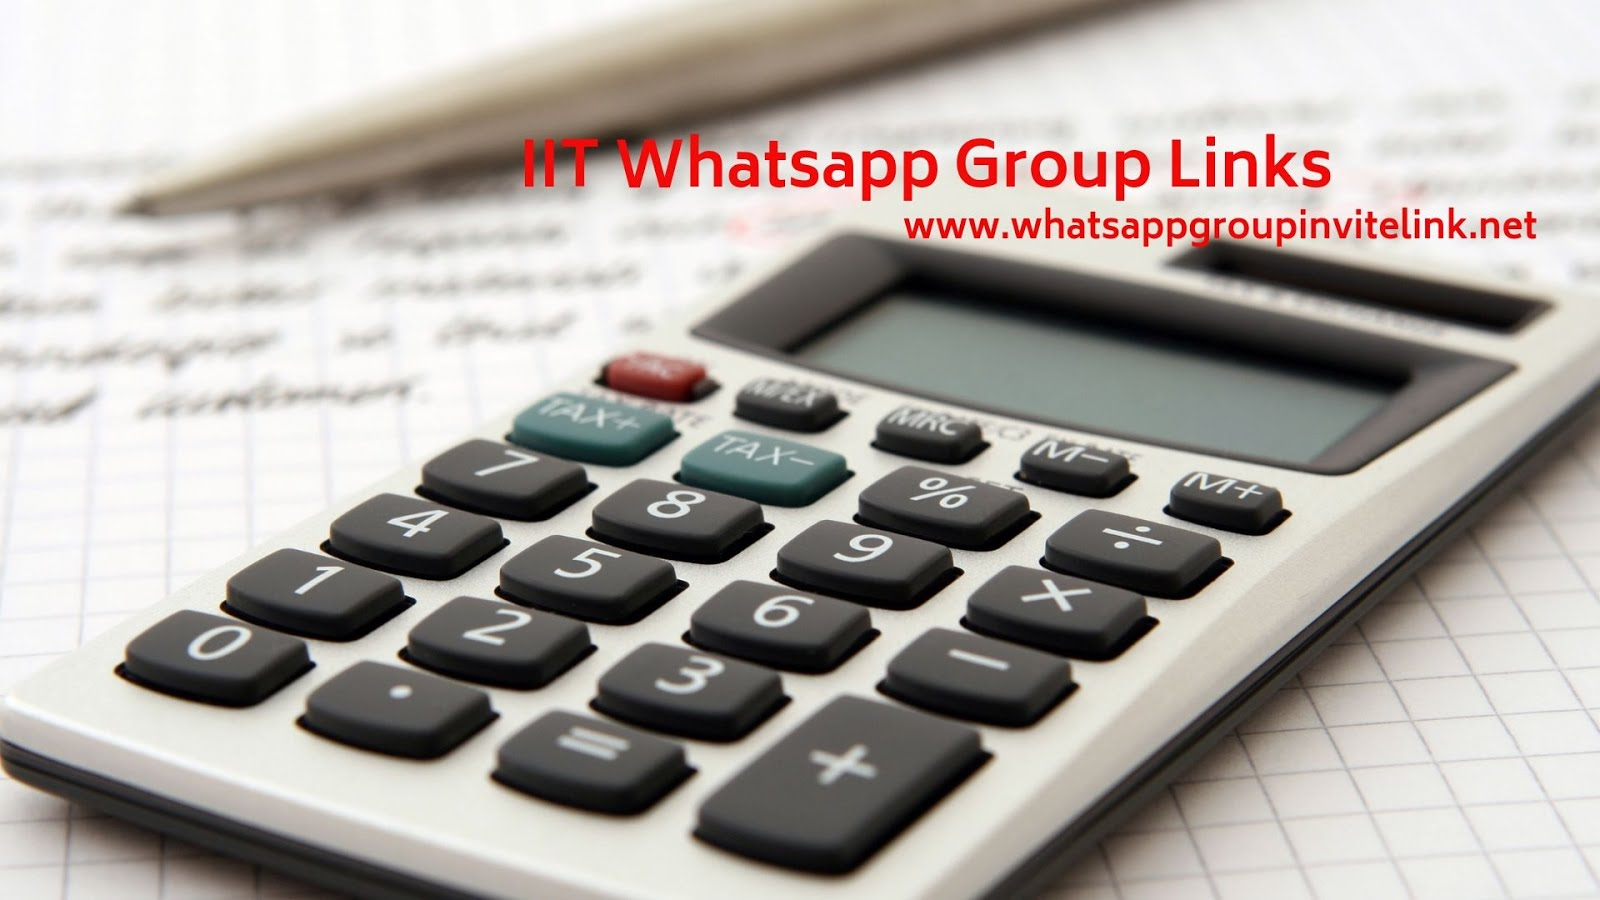 Whatsapp Group Invite Links: IIT Whatsapp Group Links